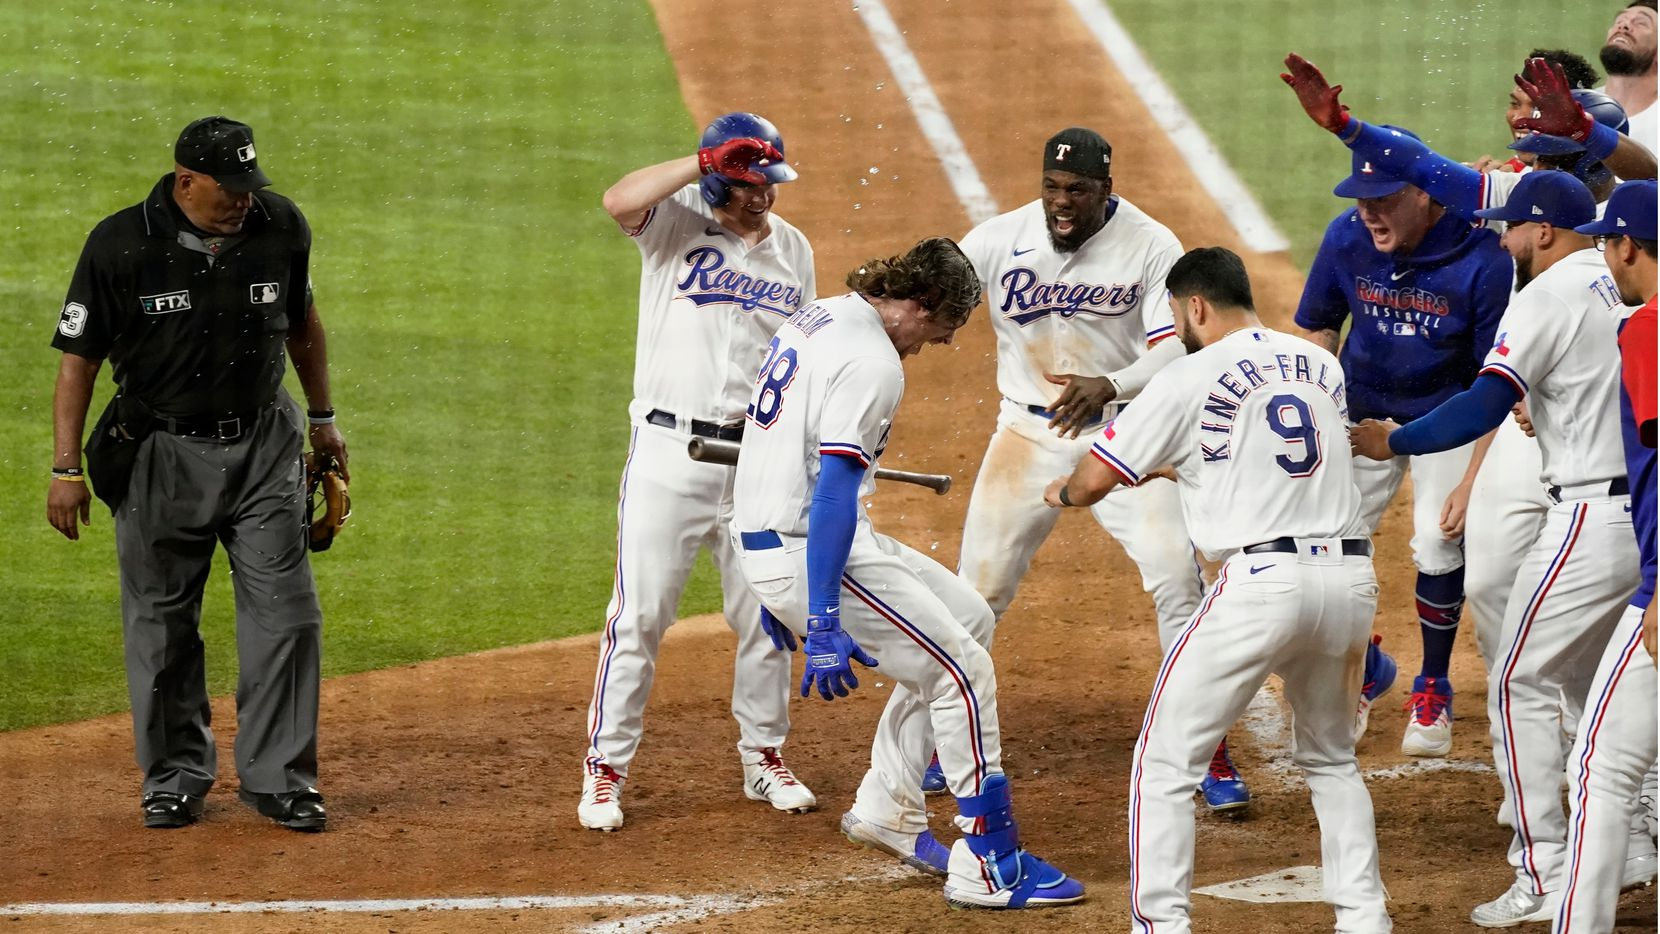 Umpire Laz Diaz, left, watches as Texas Rangers' Jonah Heim (28) approaches the plate after hitting a two-run home run in the 10th inning of the team's baseball game against the Seattle Mariners in Arlington, Texas, Saturday, July 31, 2021. (AP Photo/Tony Gutierrez)